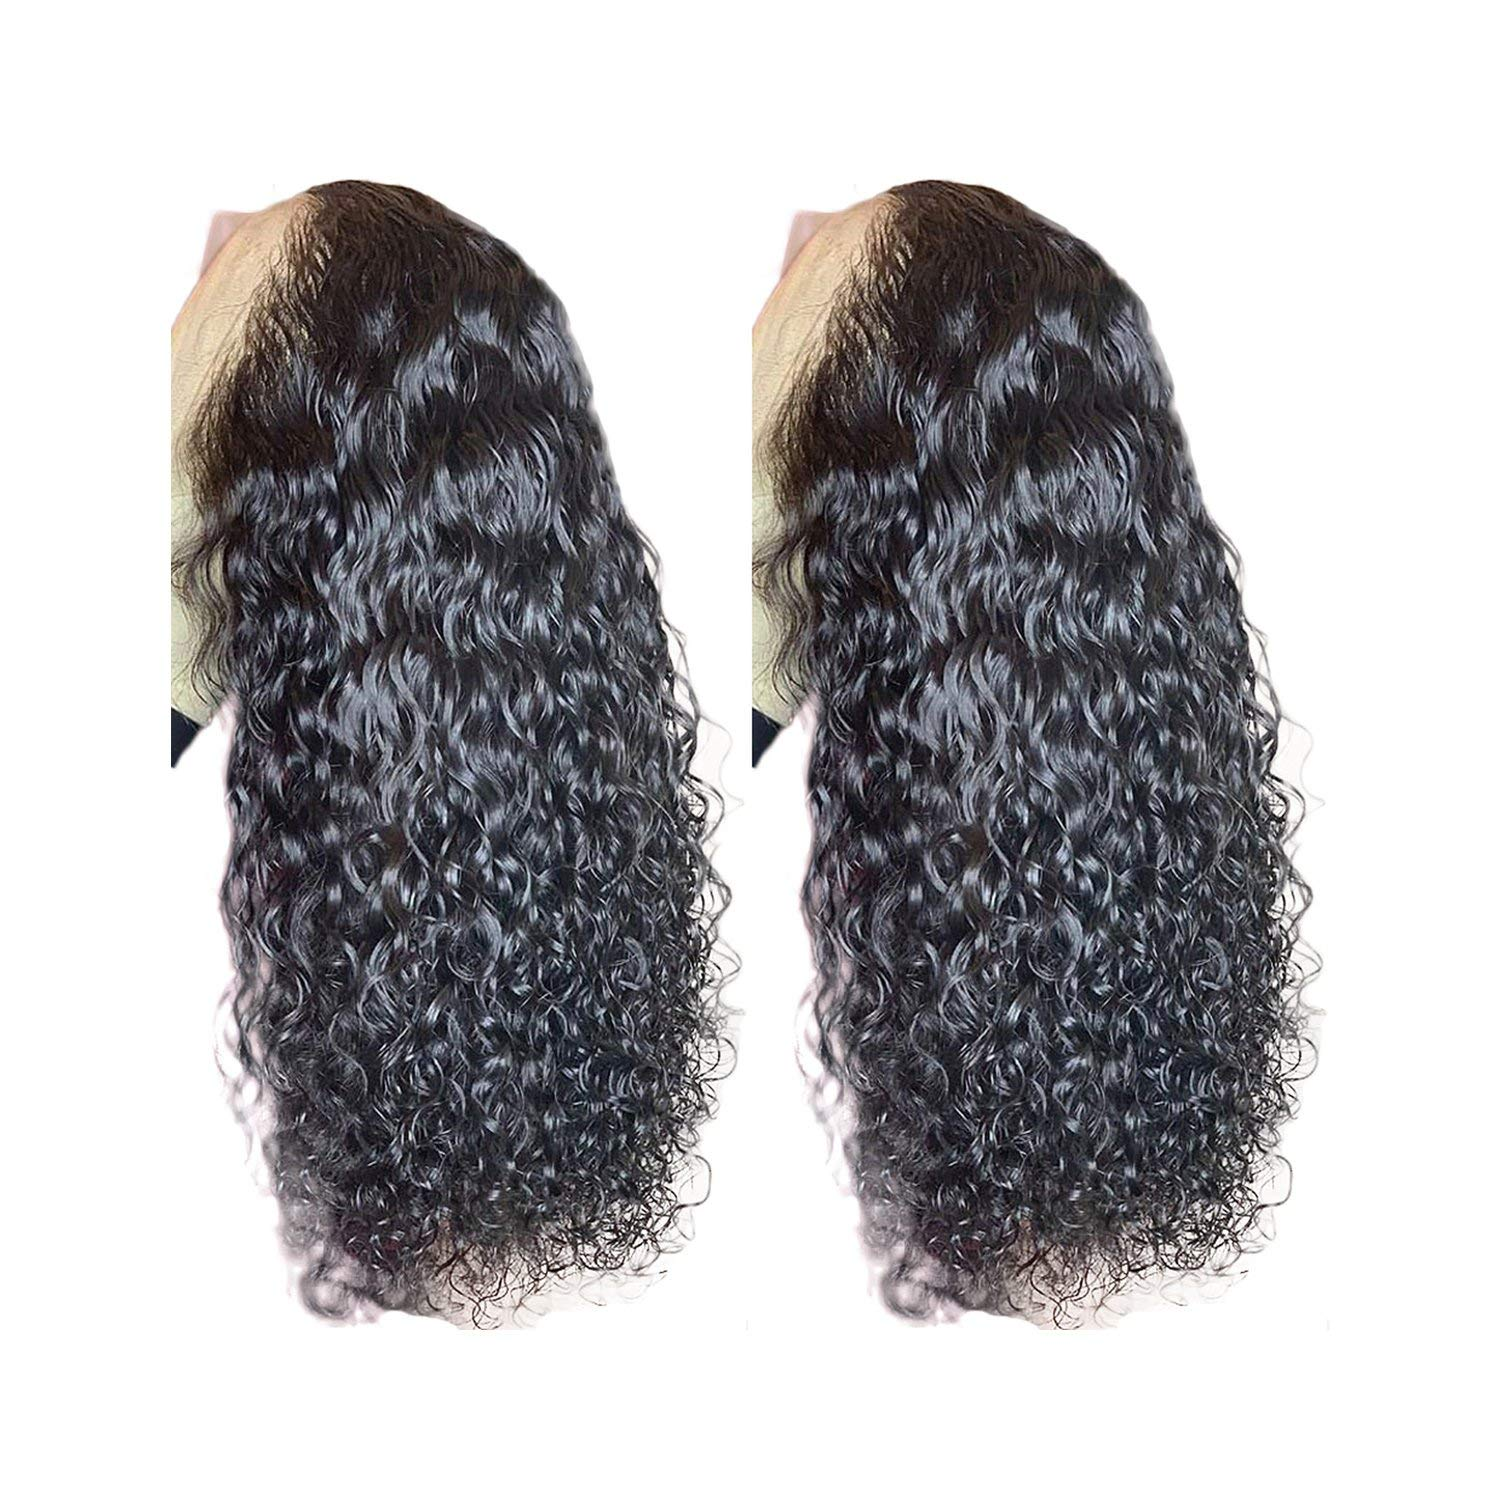 150% Density 360 Lace Frontal Wig For Women Brazilian Remy Hair Pre Plucked Curly Lace Front Human Hair Wigs Bleached Knots,20inches